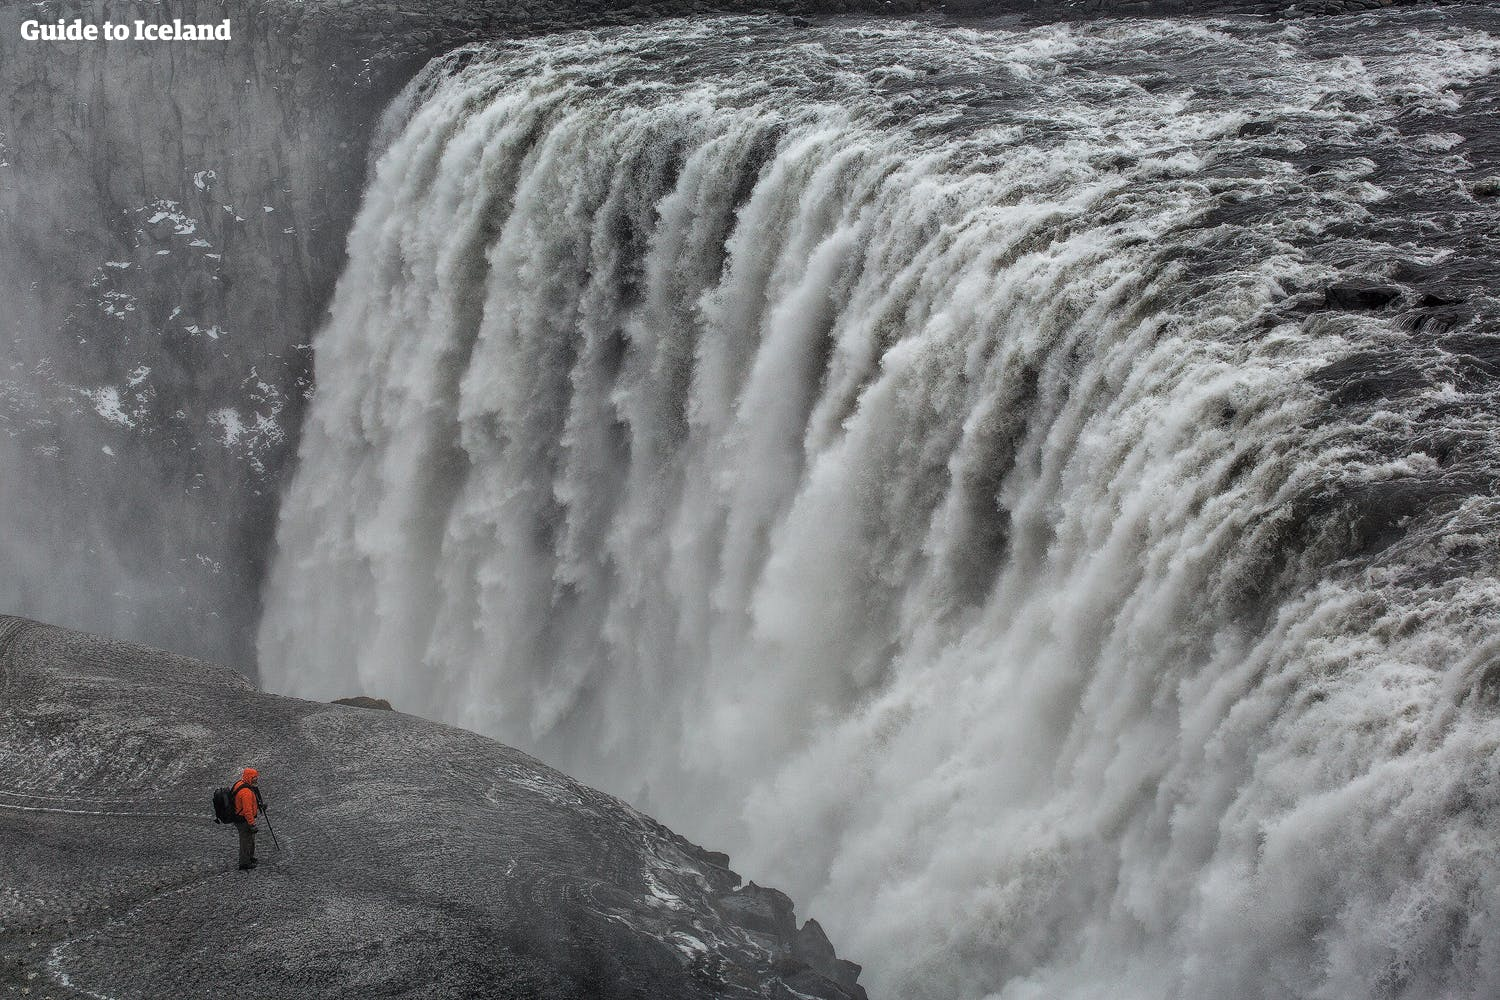 Arguably, Dettifoss waterfall has the most powerful flow of any waterfall in Europe.